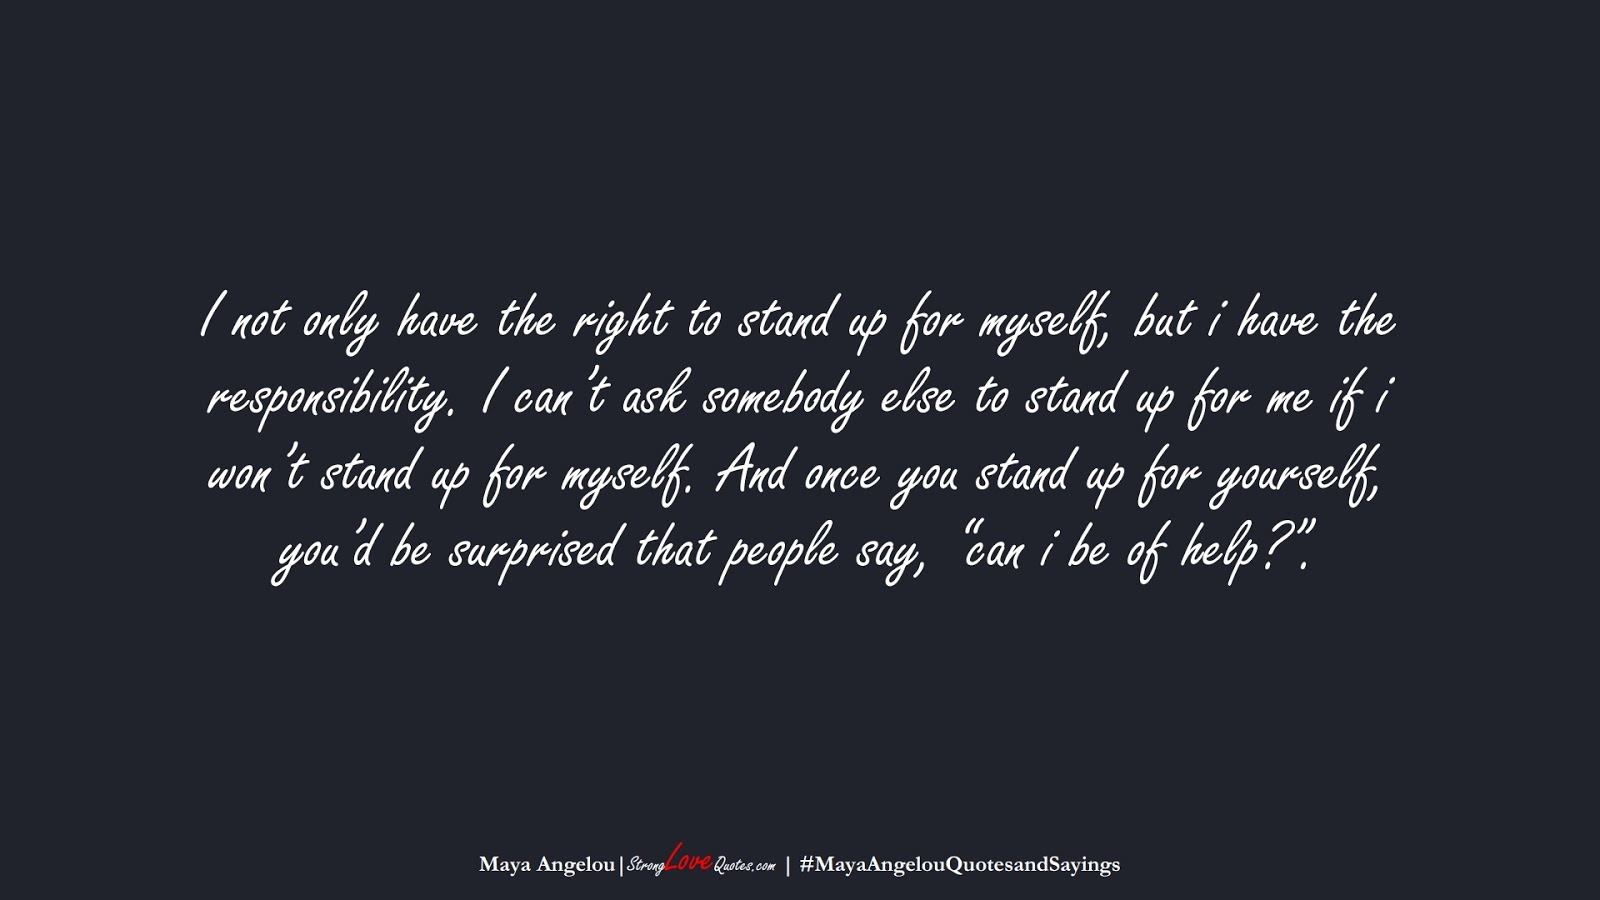 """I not only have the right to stand up for myself, but i have the responsibility. I can't ask somebody else to stand up for me if i won't stand up for myself. And once you stand up for yourself, you'd be surprised that people say, """"can i be of help?"""". (Maya Angelou);  #MayaAngelouQuotesandSayings"""